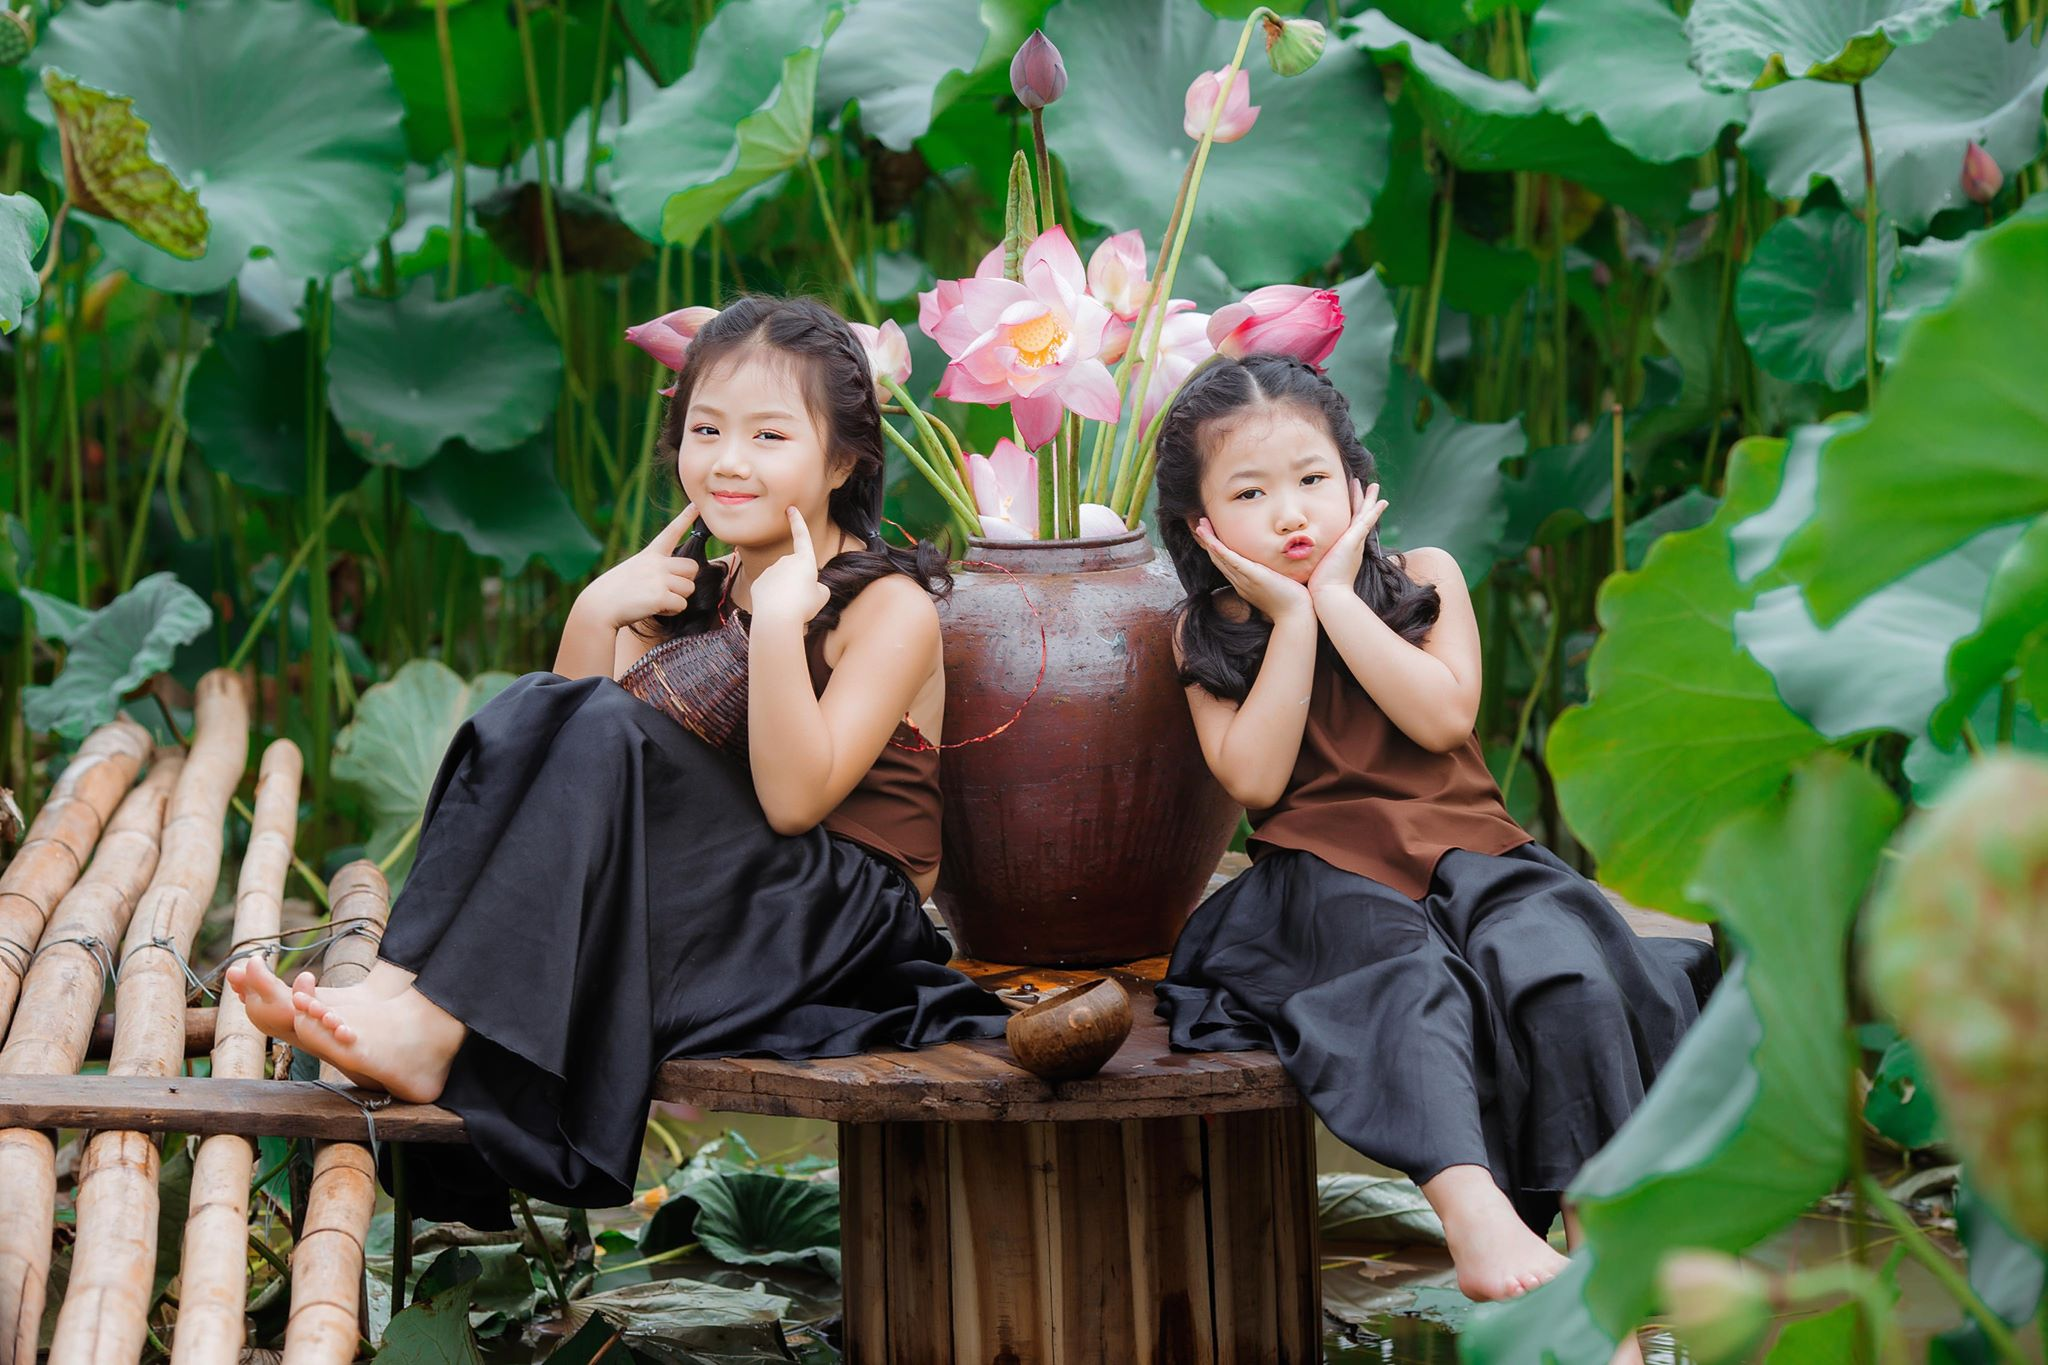 """tiet lo soc ve ket phim quynh bup be: """"lan cave"""" thanh huong len tieng hinh anh 6"""